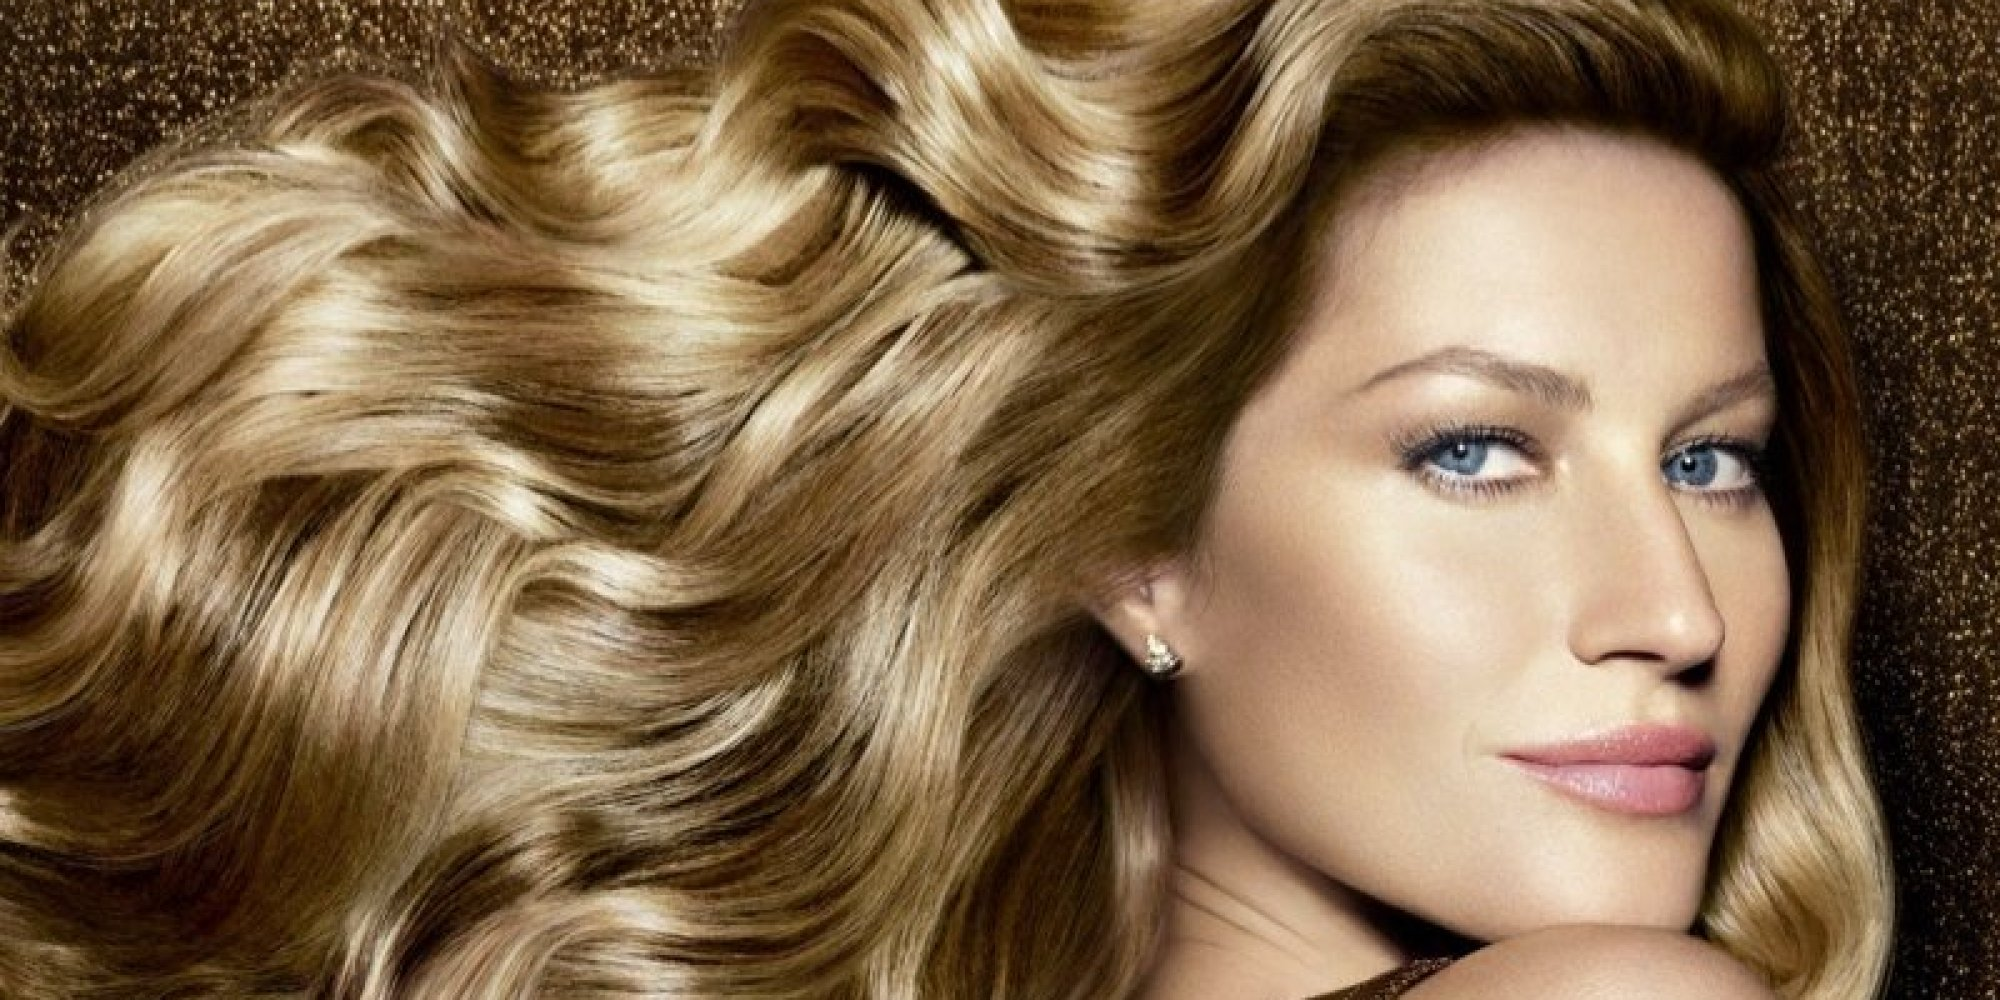 Gisele To Taunt American Women With Her Superior Hair In